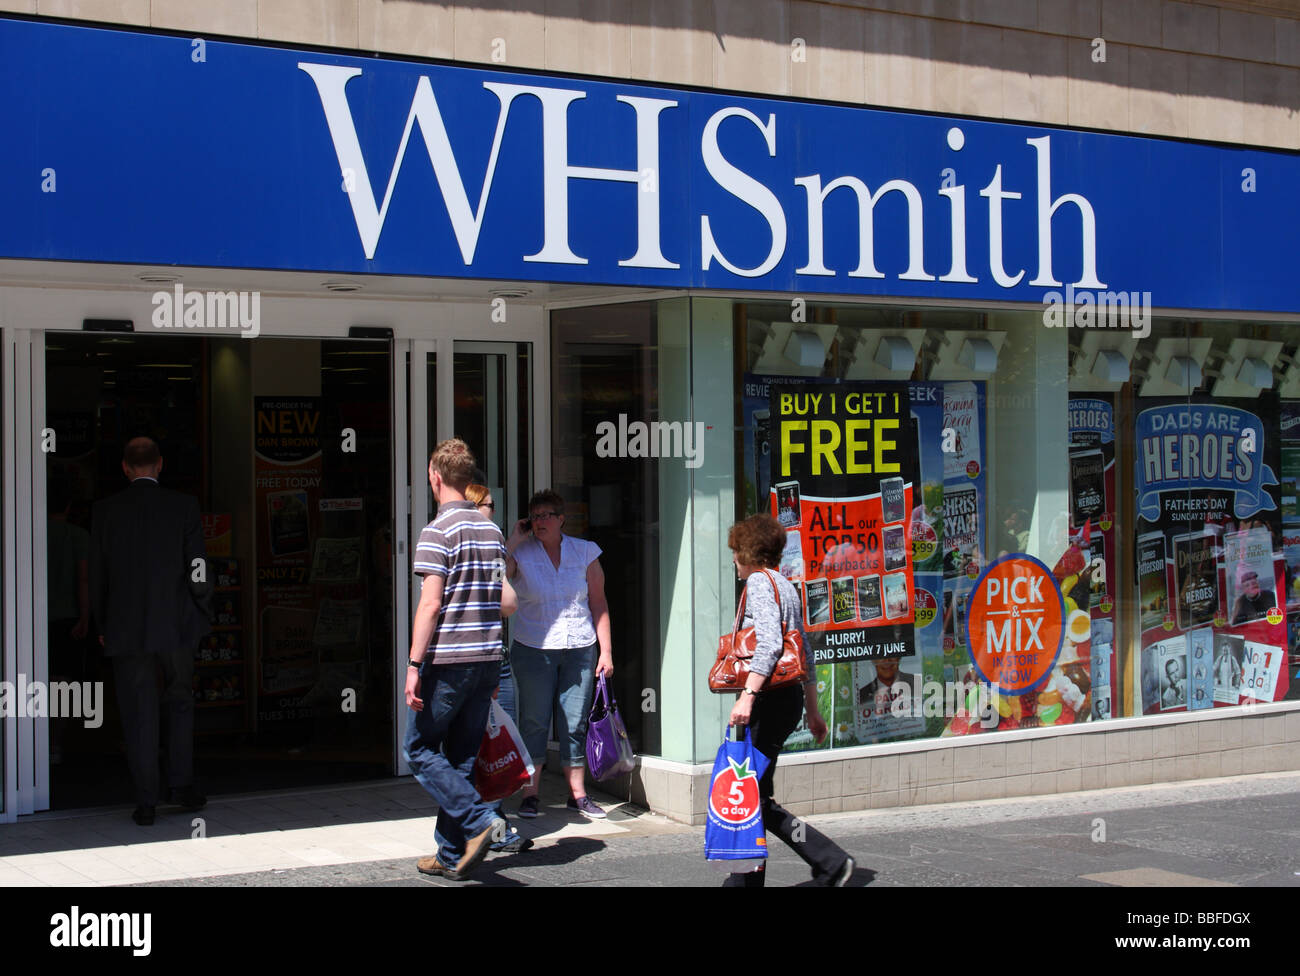 W H Smith retail outlet in a U.K. city. - Stock Image